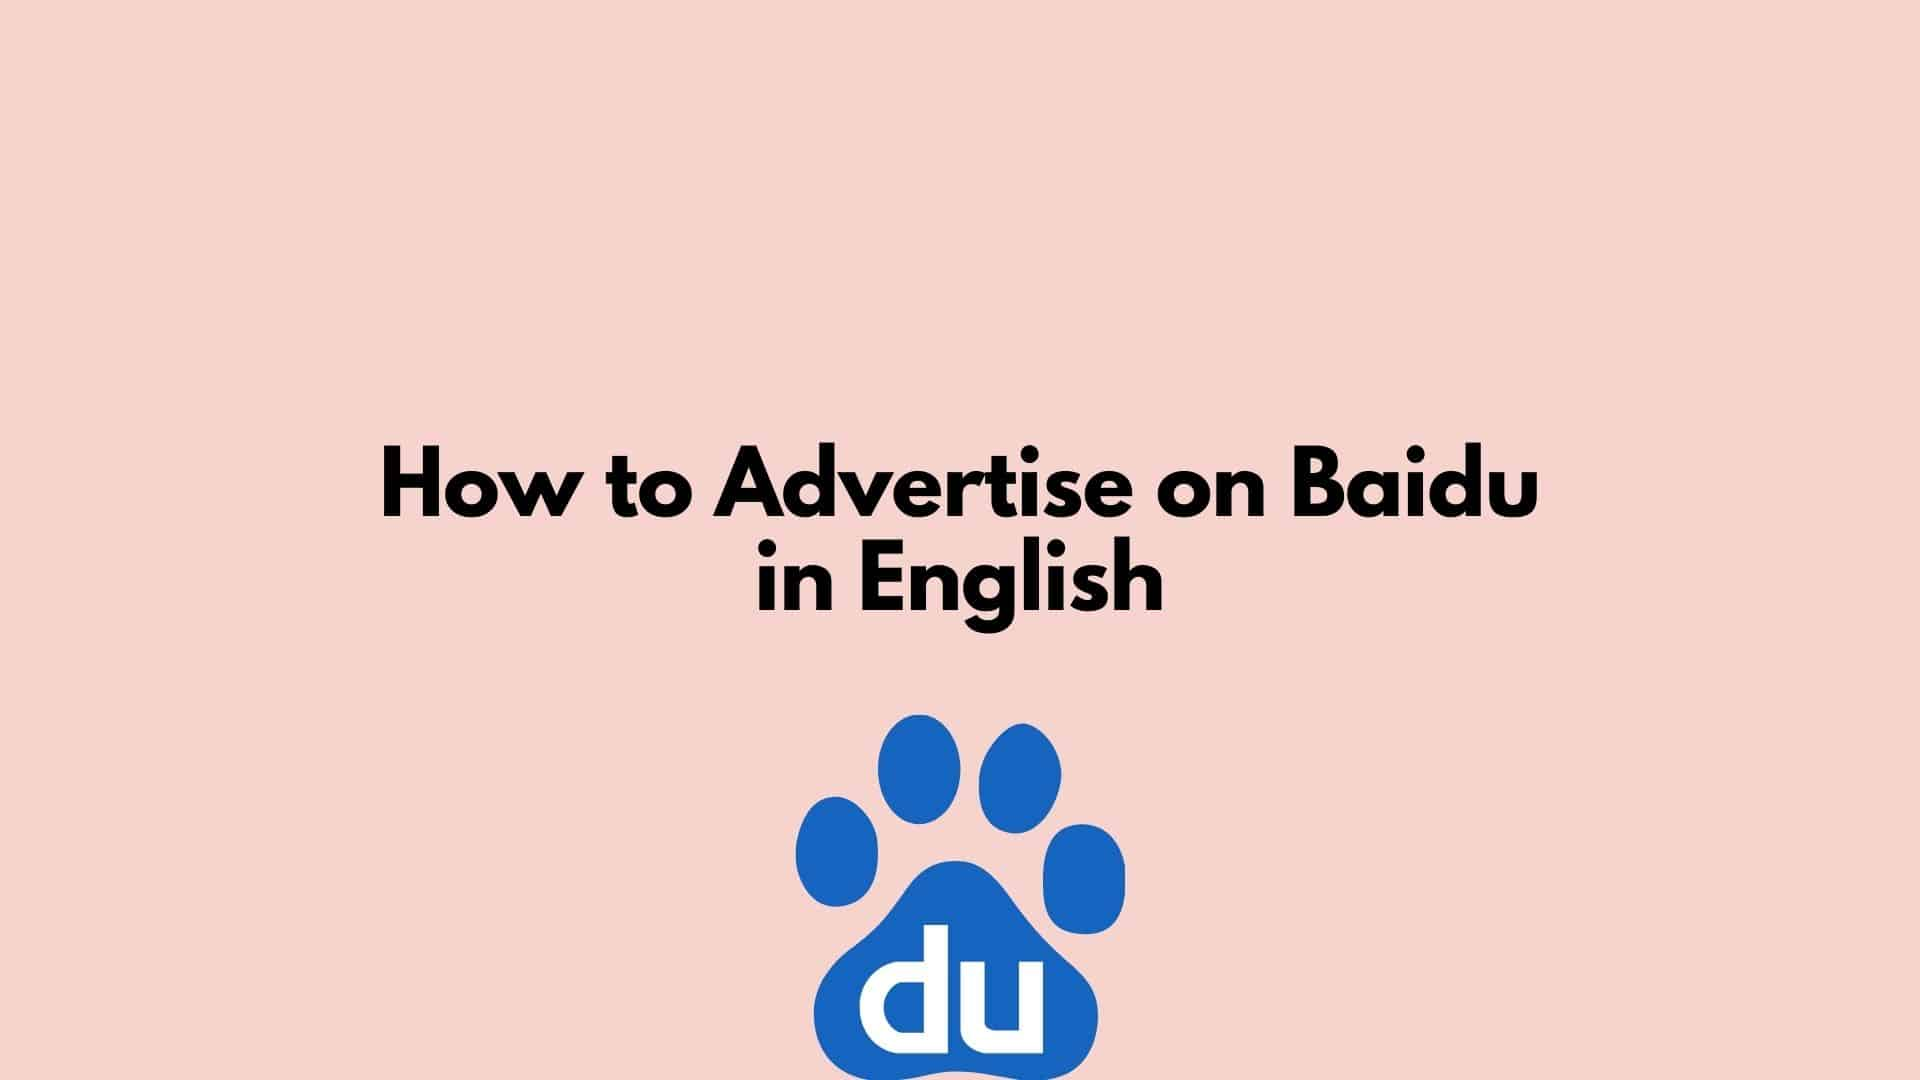 How to Advertise on Baidu in English